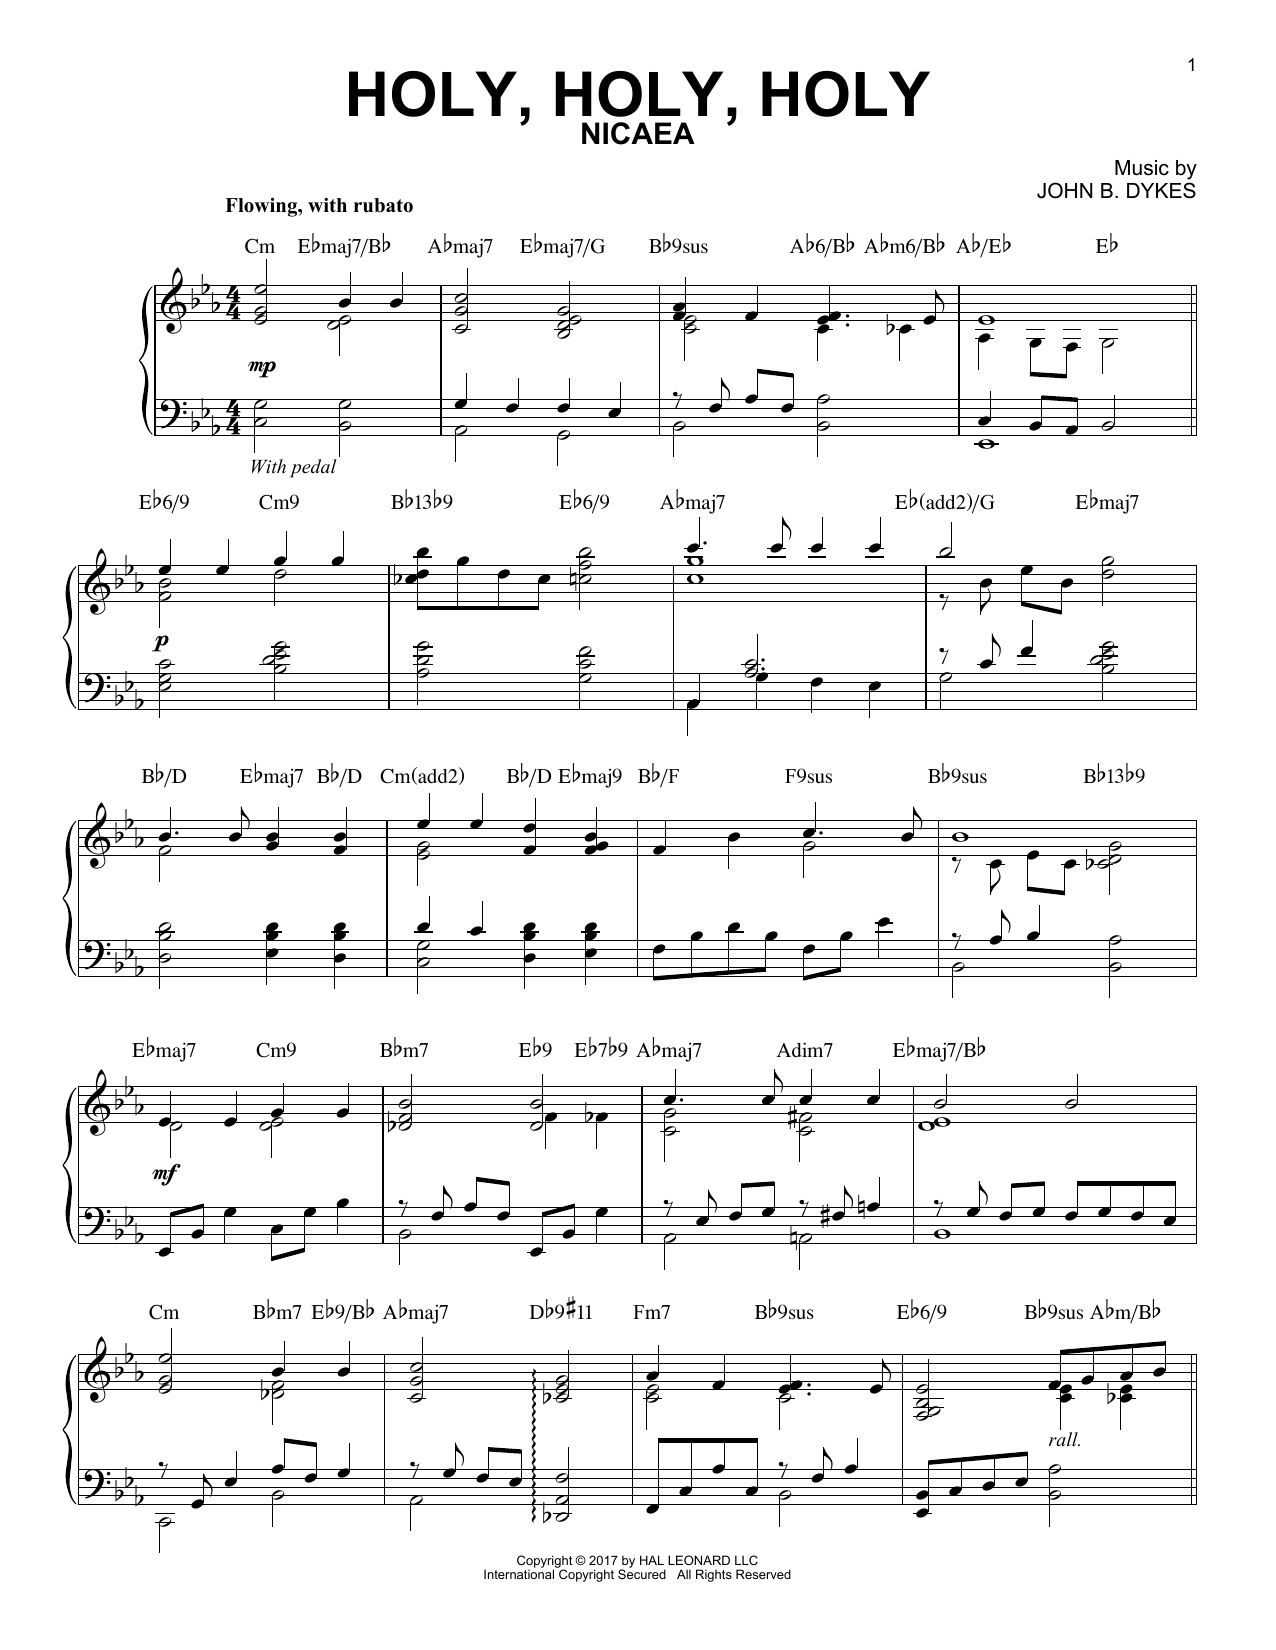 Reginald Heber Holy, Holy, Holy [Jazz version] sheet music notes and chords. Download Printable PDF.